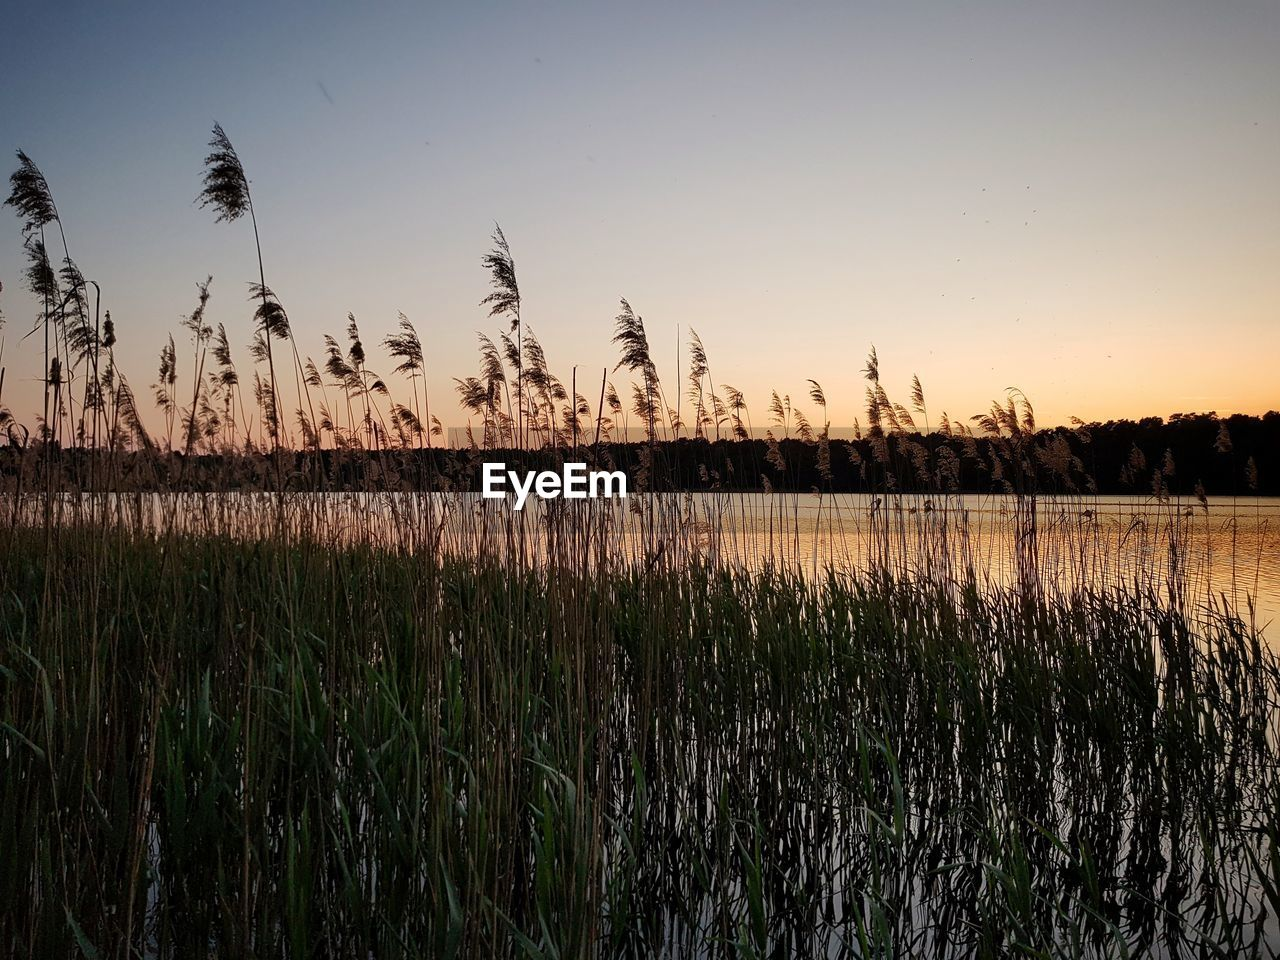 sky, tranquility, beauty in nature, plant, scenics - nature, sunset, growth, tranquil scene, nature, landscape, land, field, no people, water, rural scene, non-urban scene, environment, grass, agriculture, outdoors, timothy grass